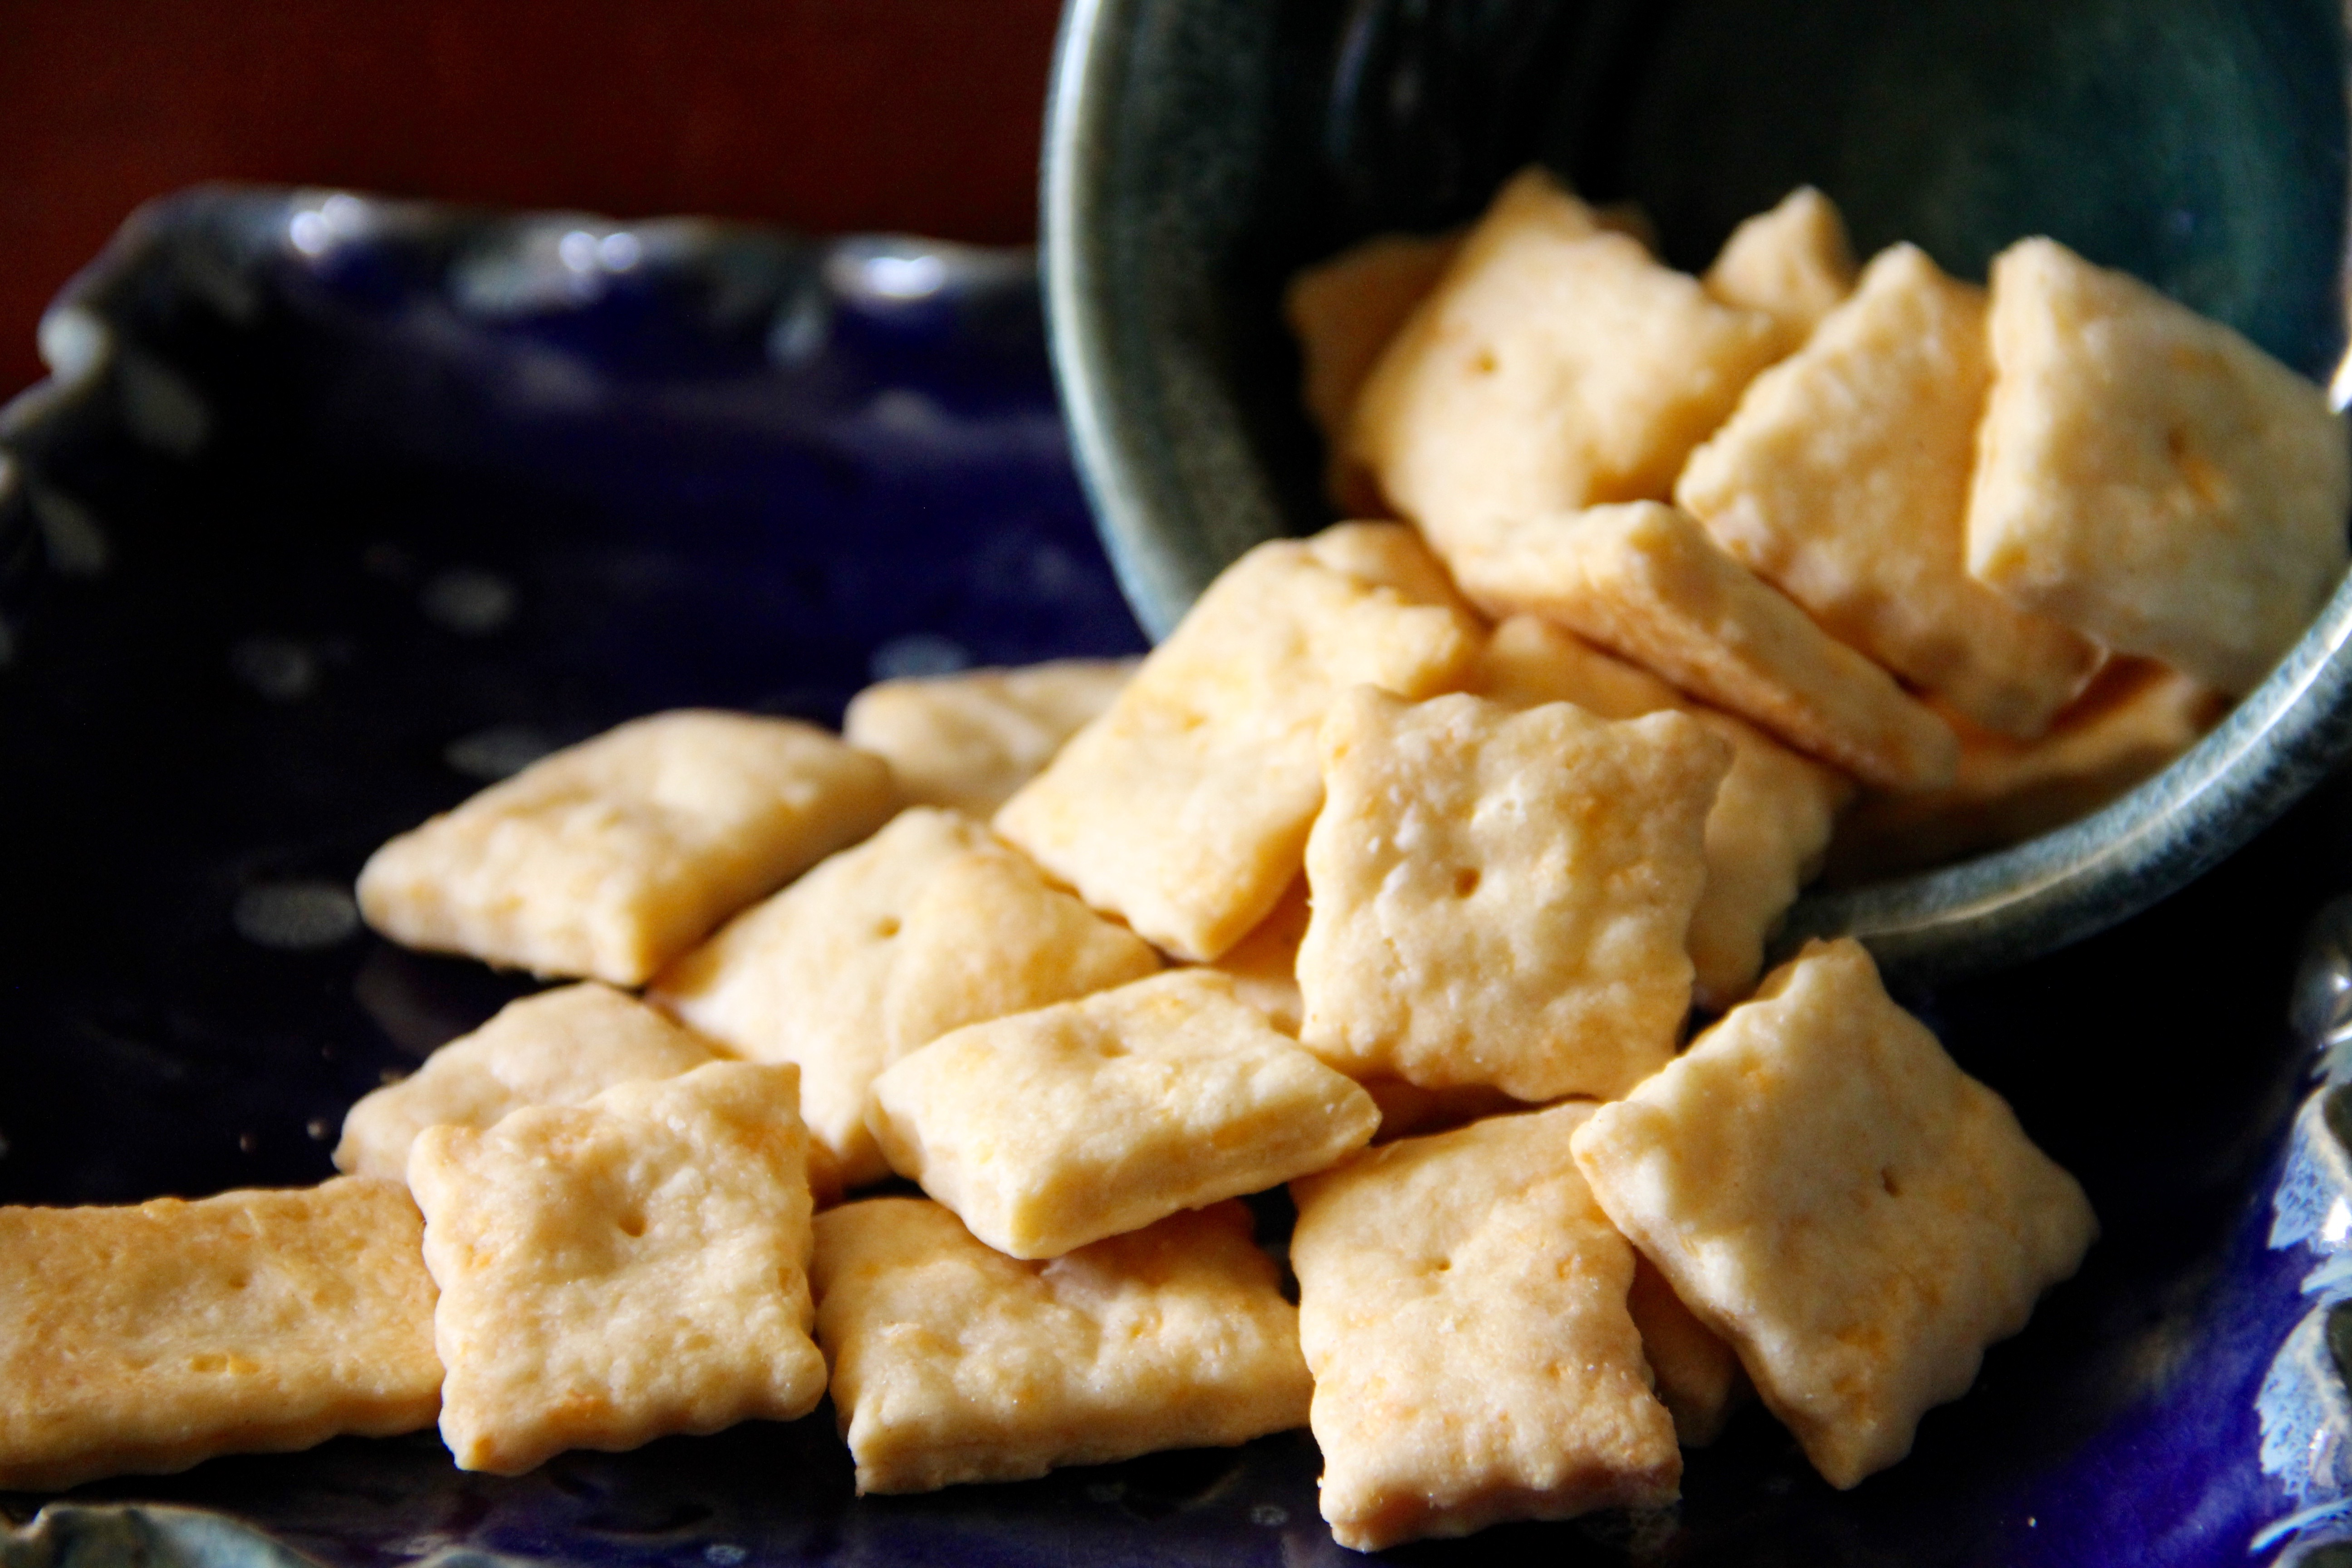 DIY Cheese Crackers that are out of this world!